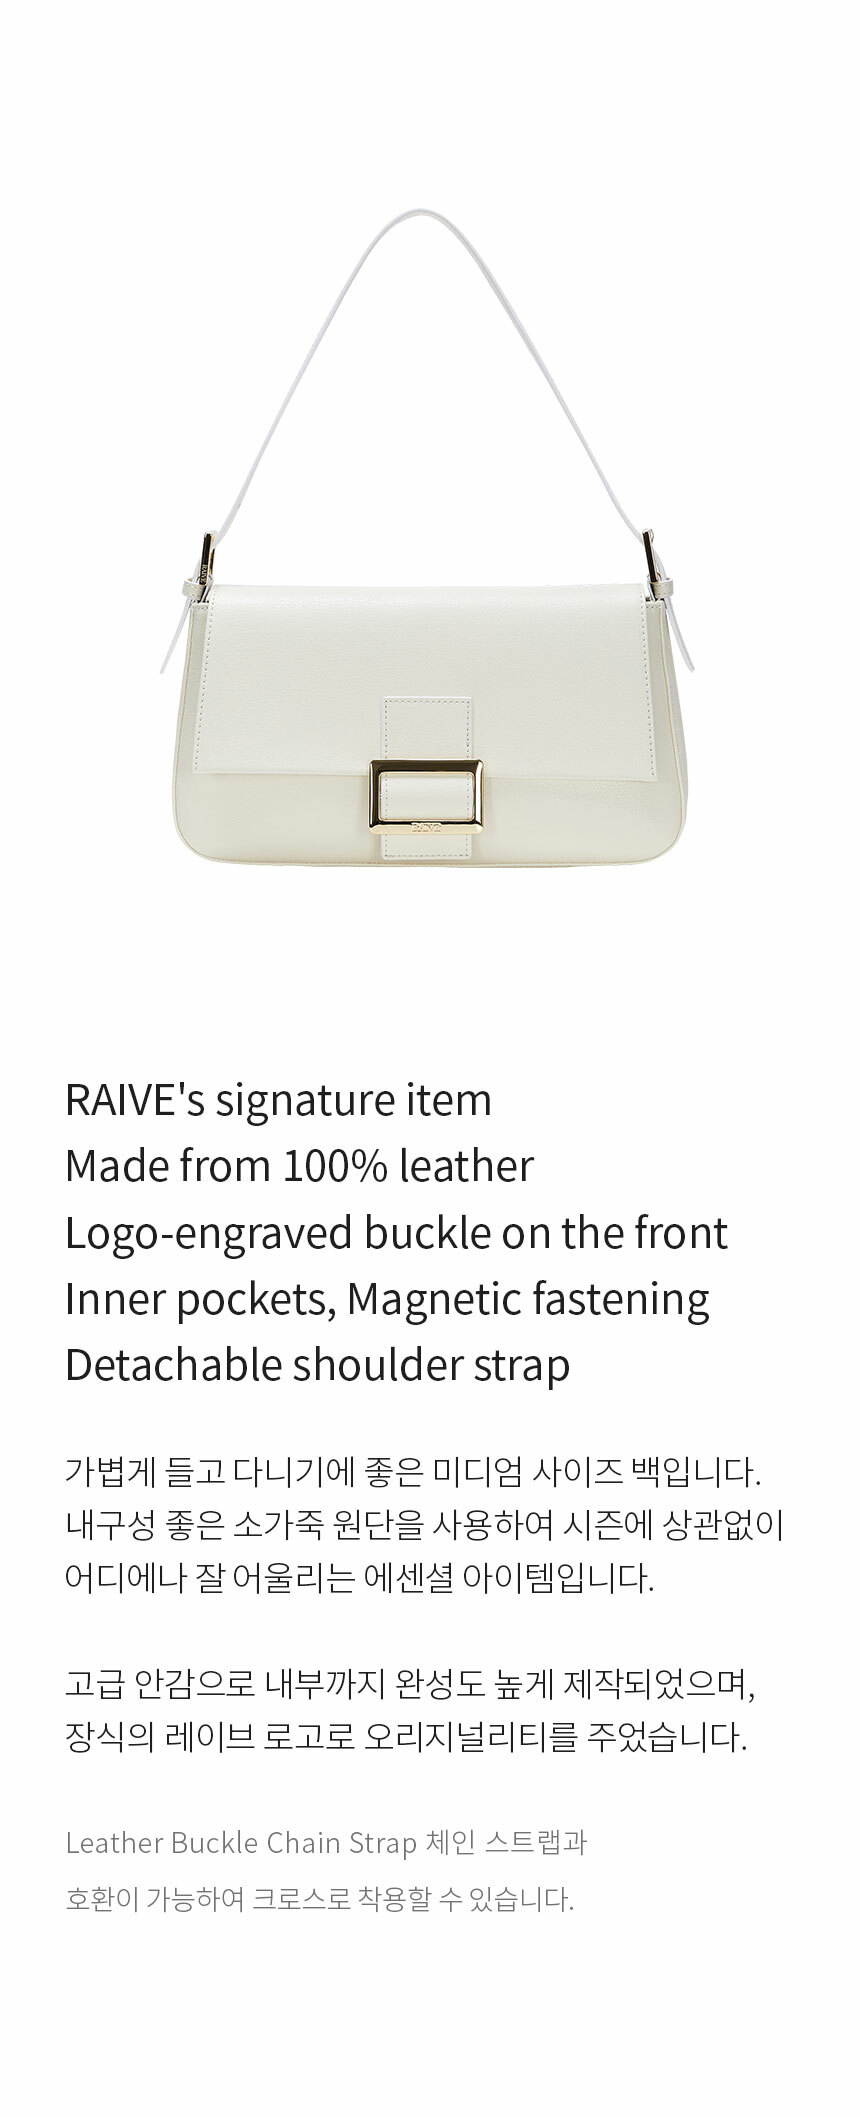 레이브(RAIVE) Real Leather Luke Bag in O/White_VX1SG500-02